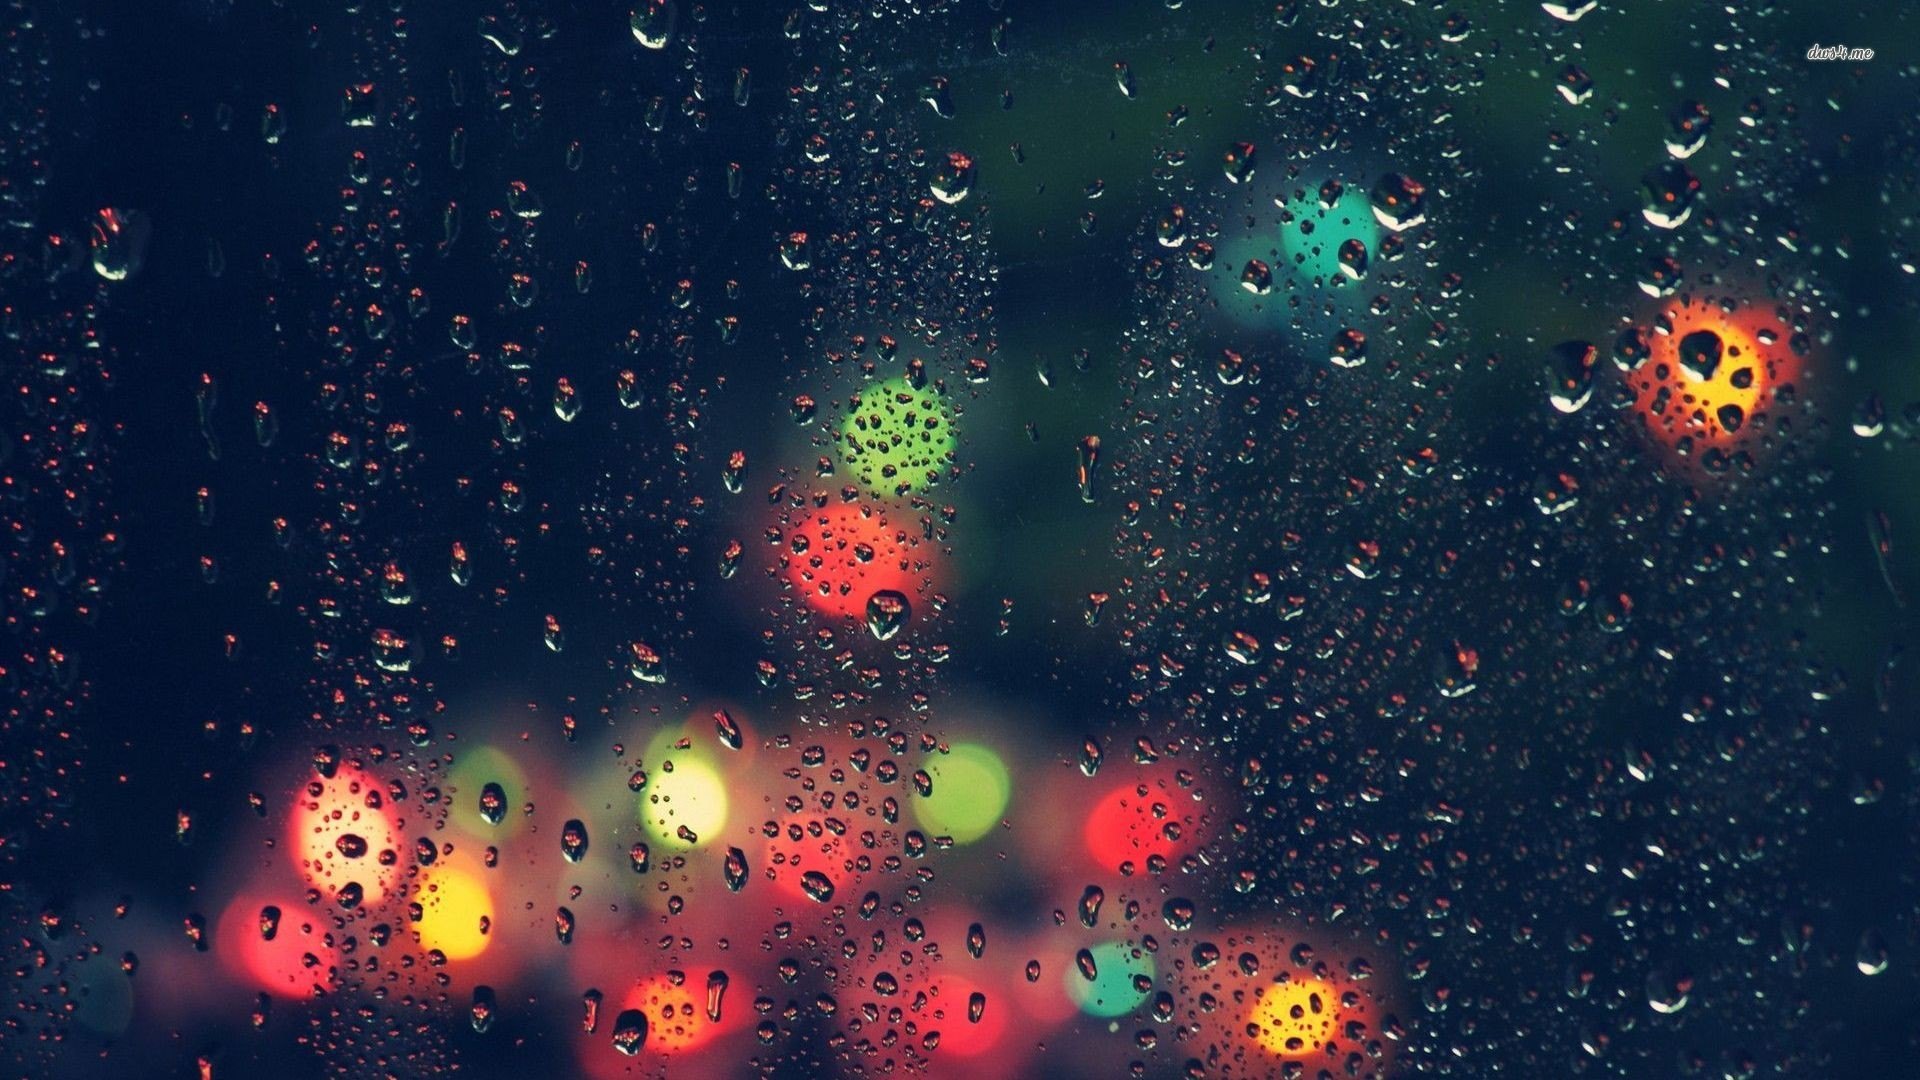 beyond the rainy window wallpaper – Photography wallpapers – #24254 .